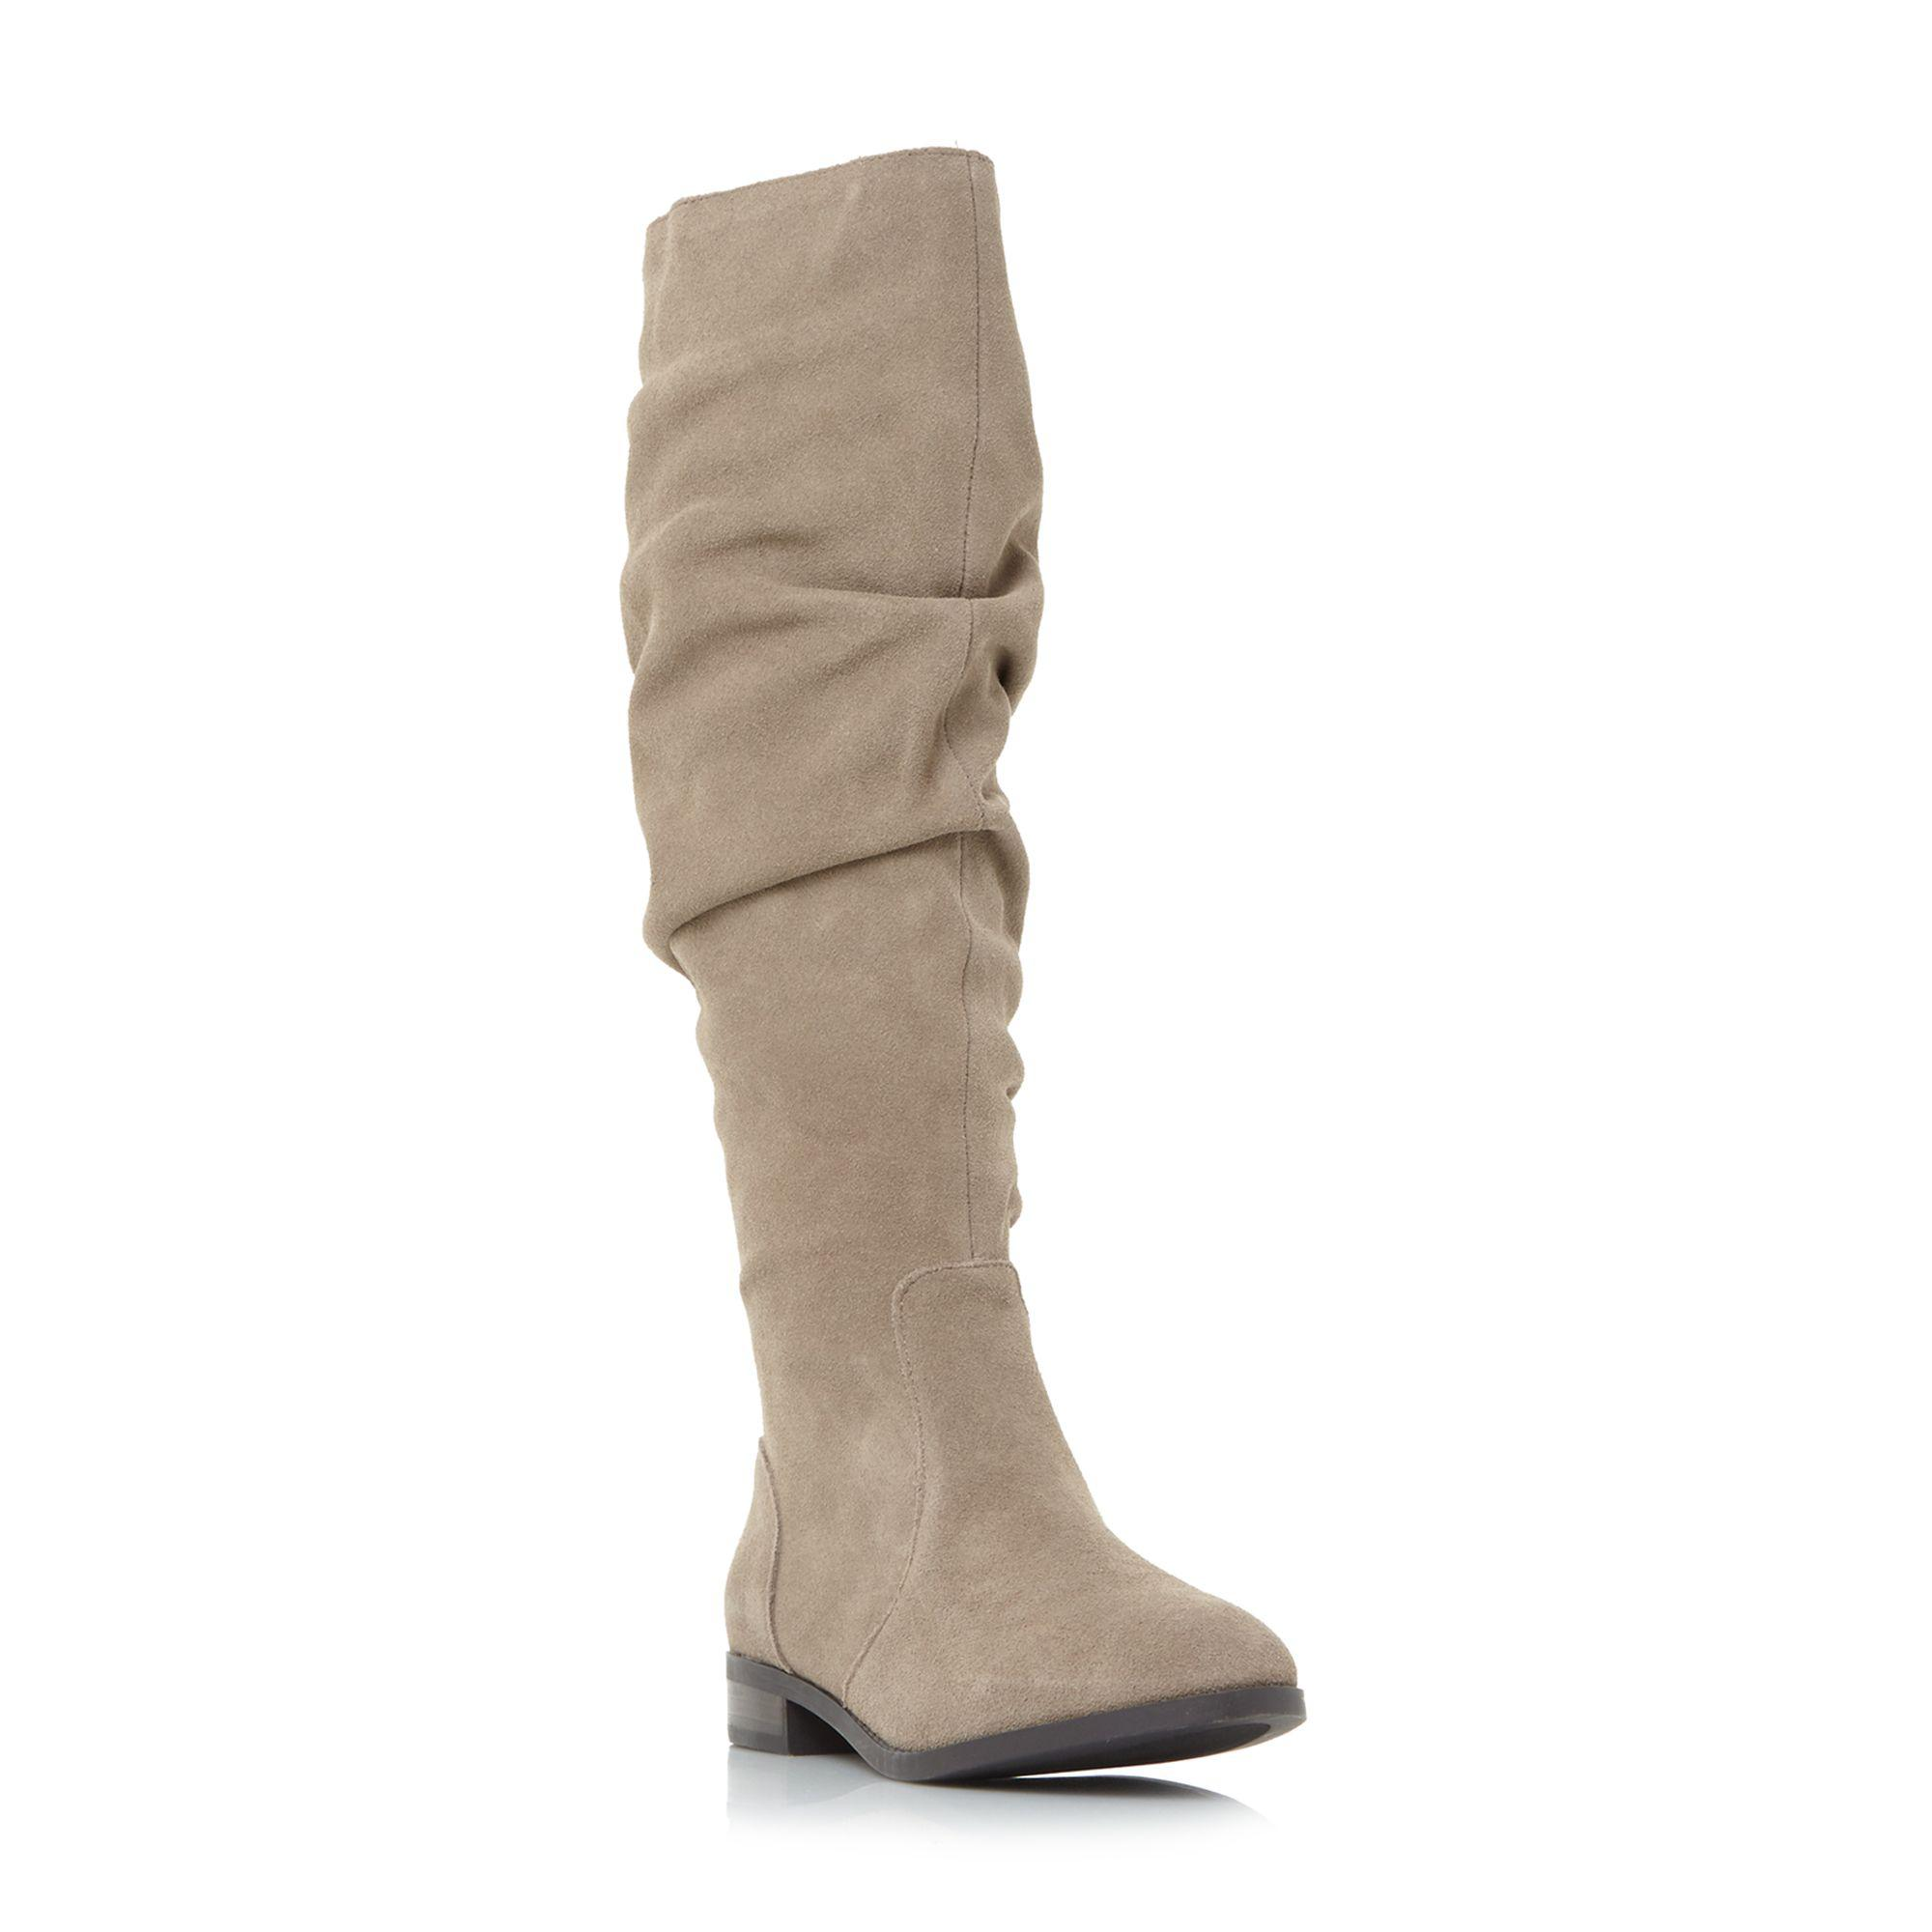 6c2972de4f7 Steve Madden Taupe Suede  beacon  Knee High Boots in Brown - Lyst